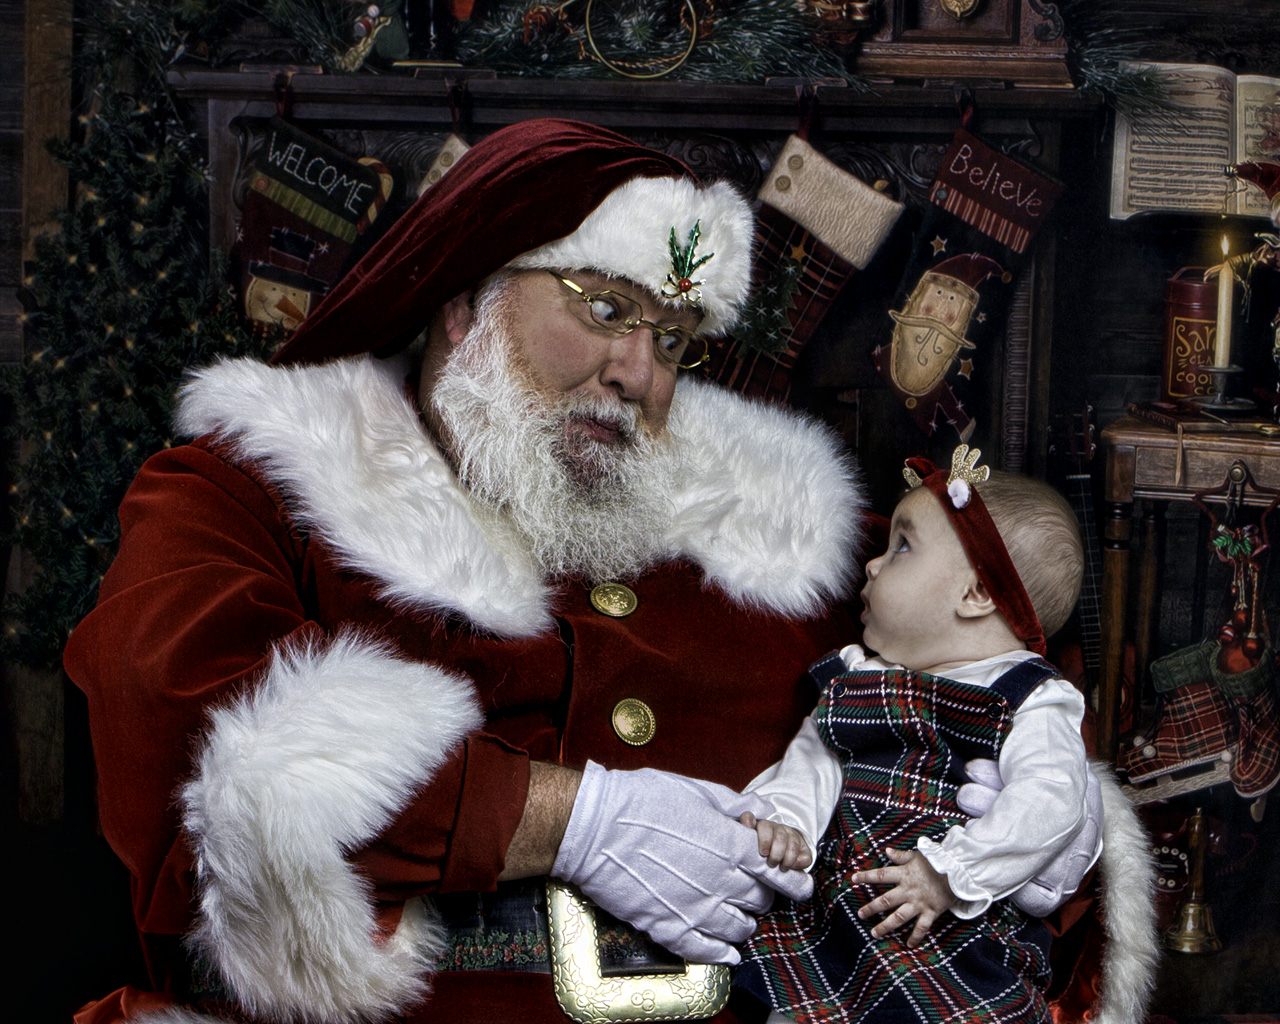 Santa entertaining a baby